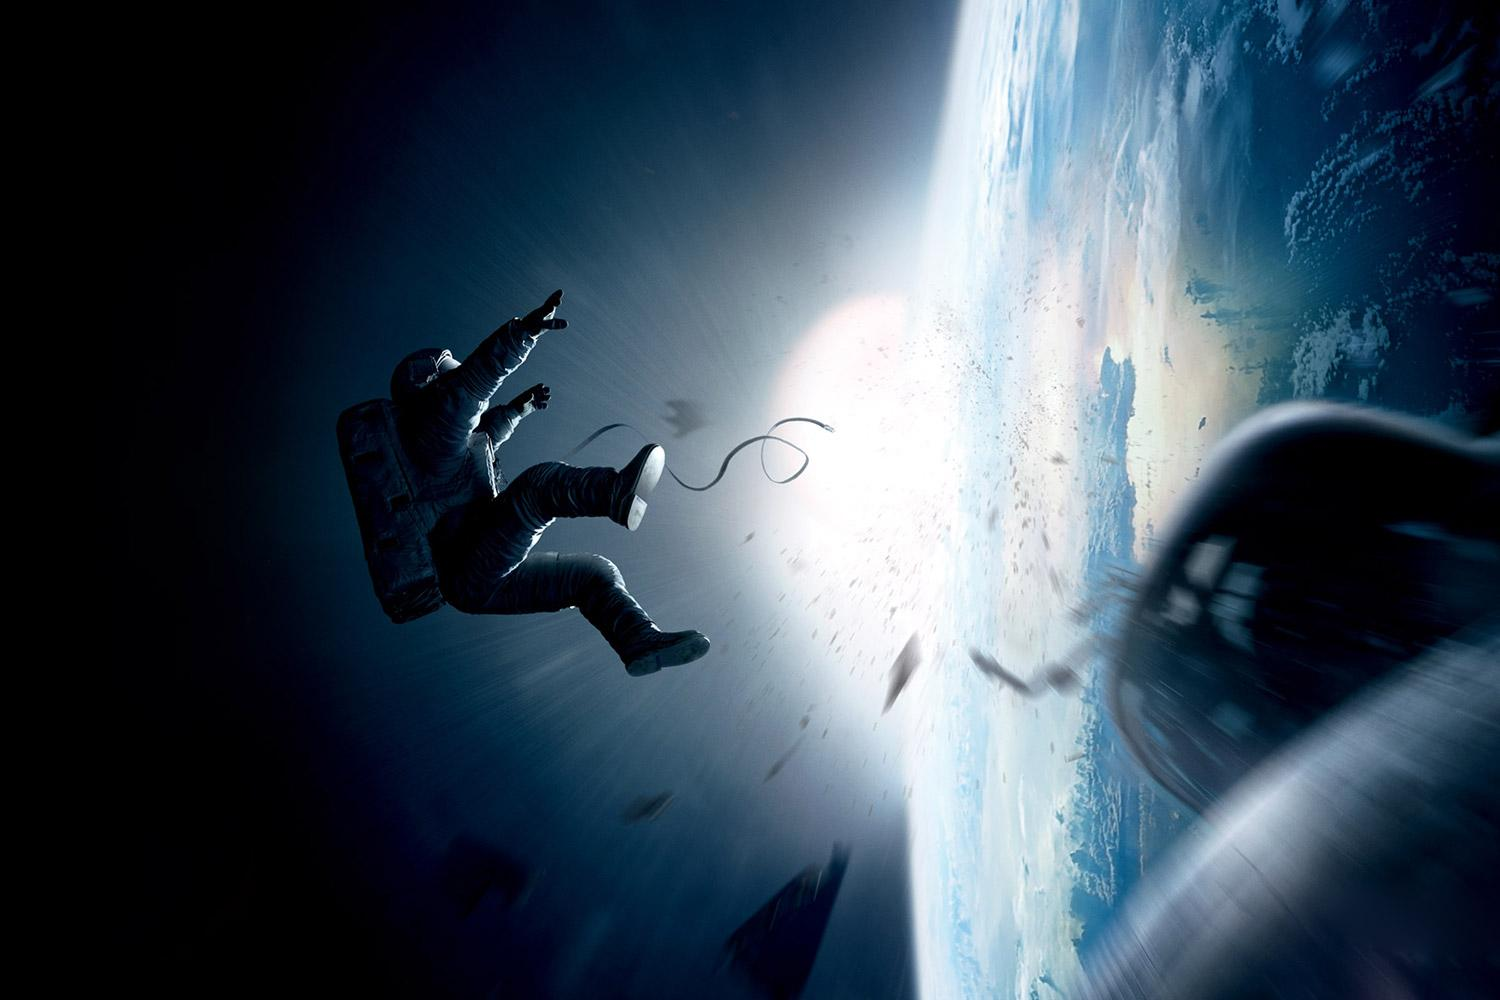 Gravity – Which way is up?